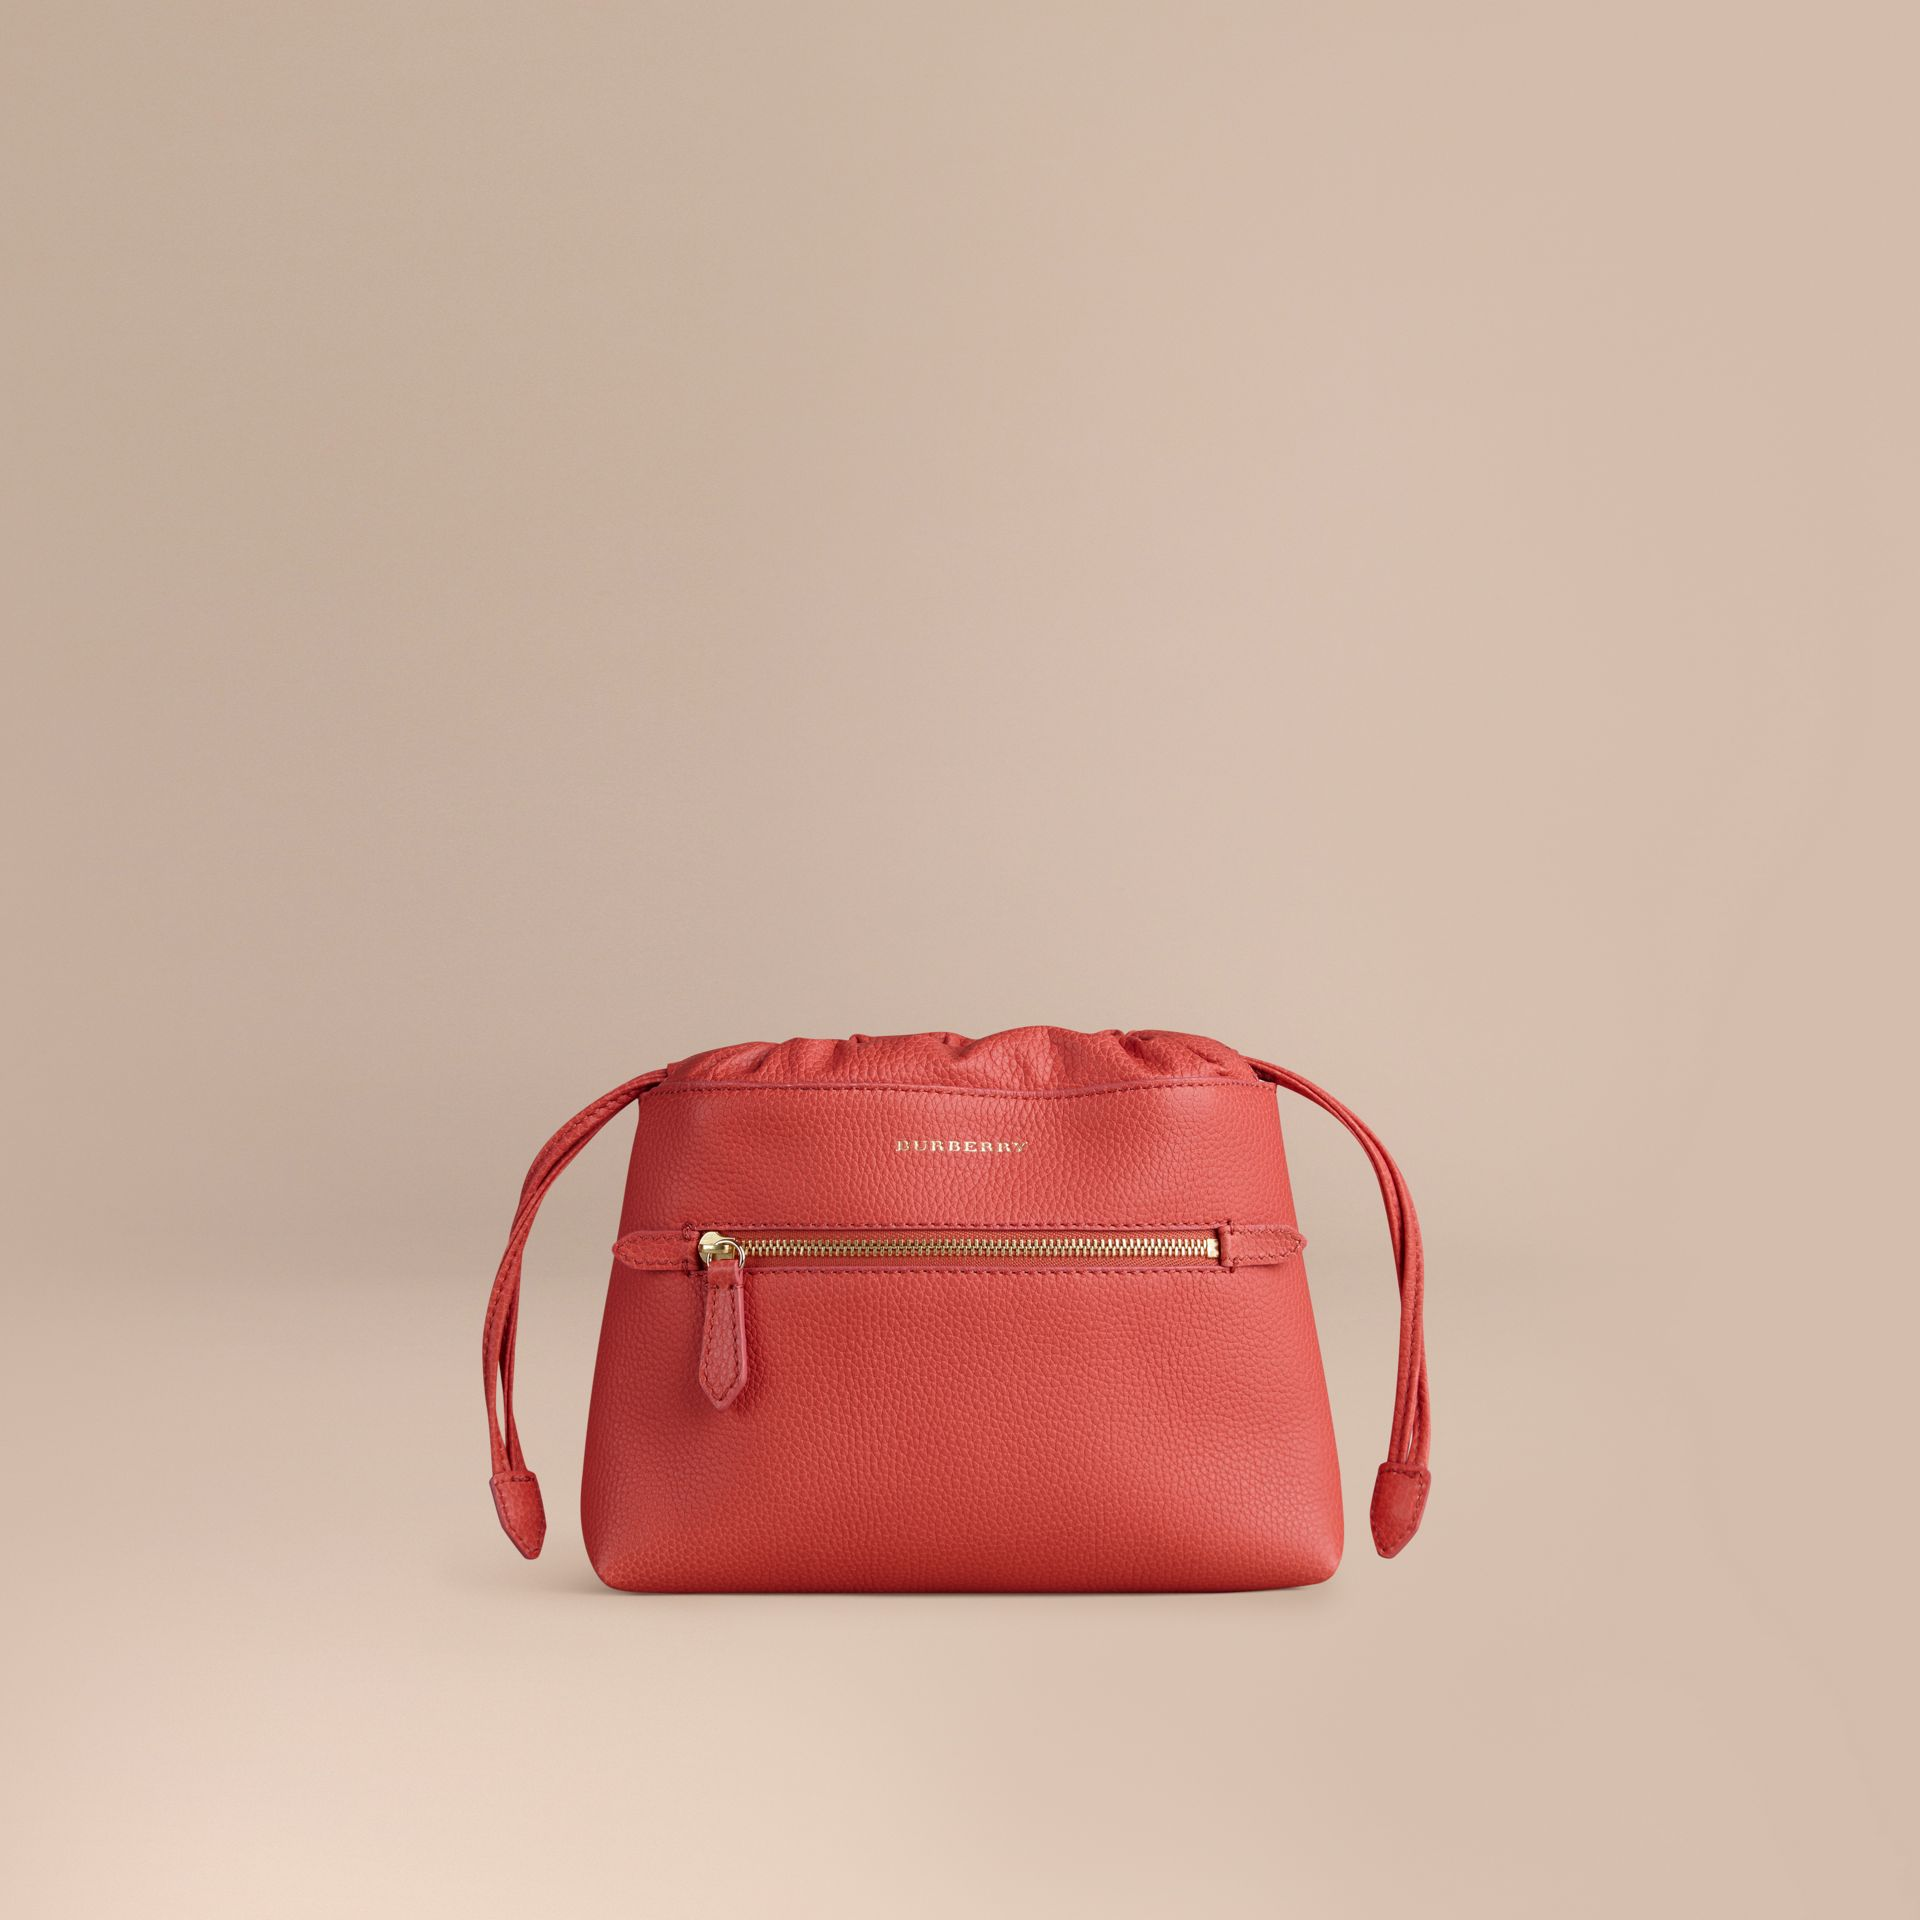 Bright peony The Mini Crush in Grainy Leather Bright Peony - gallery image 1